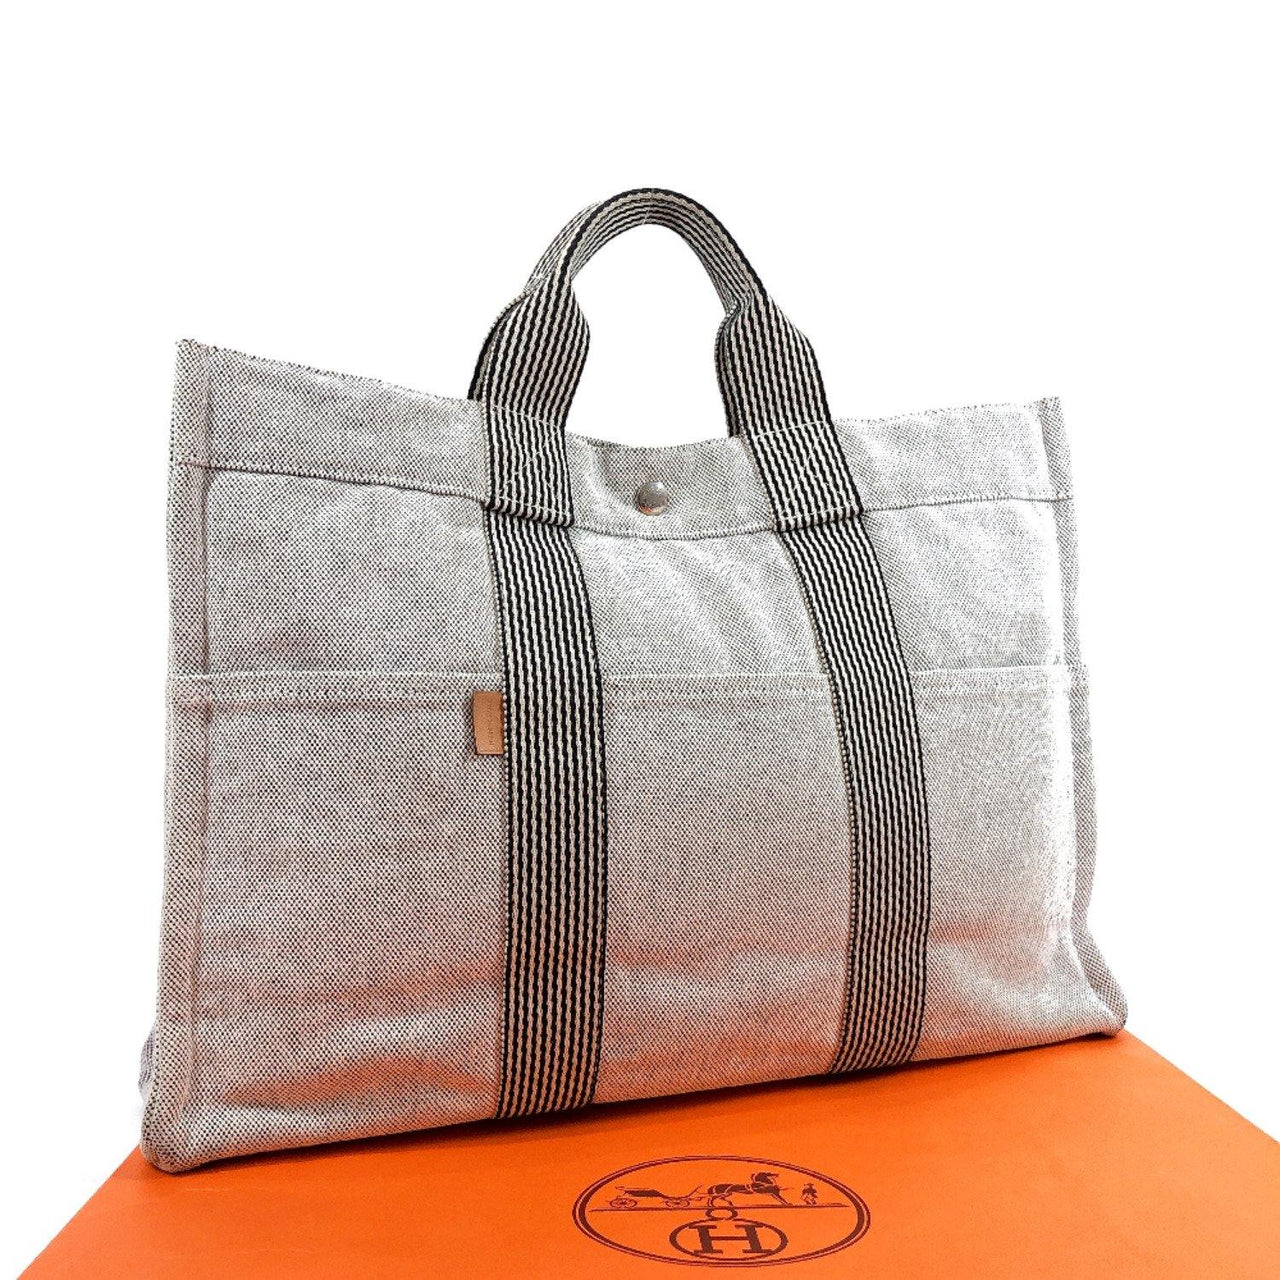 HERMES Tote Bag New fool toe MM canvas gray SilverHardware Women Used